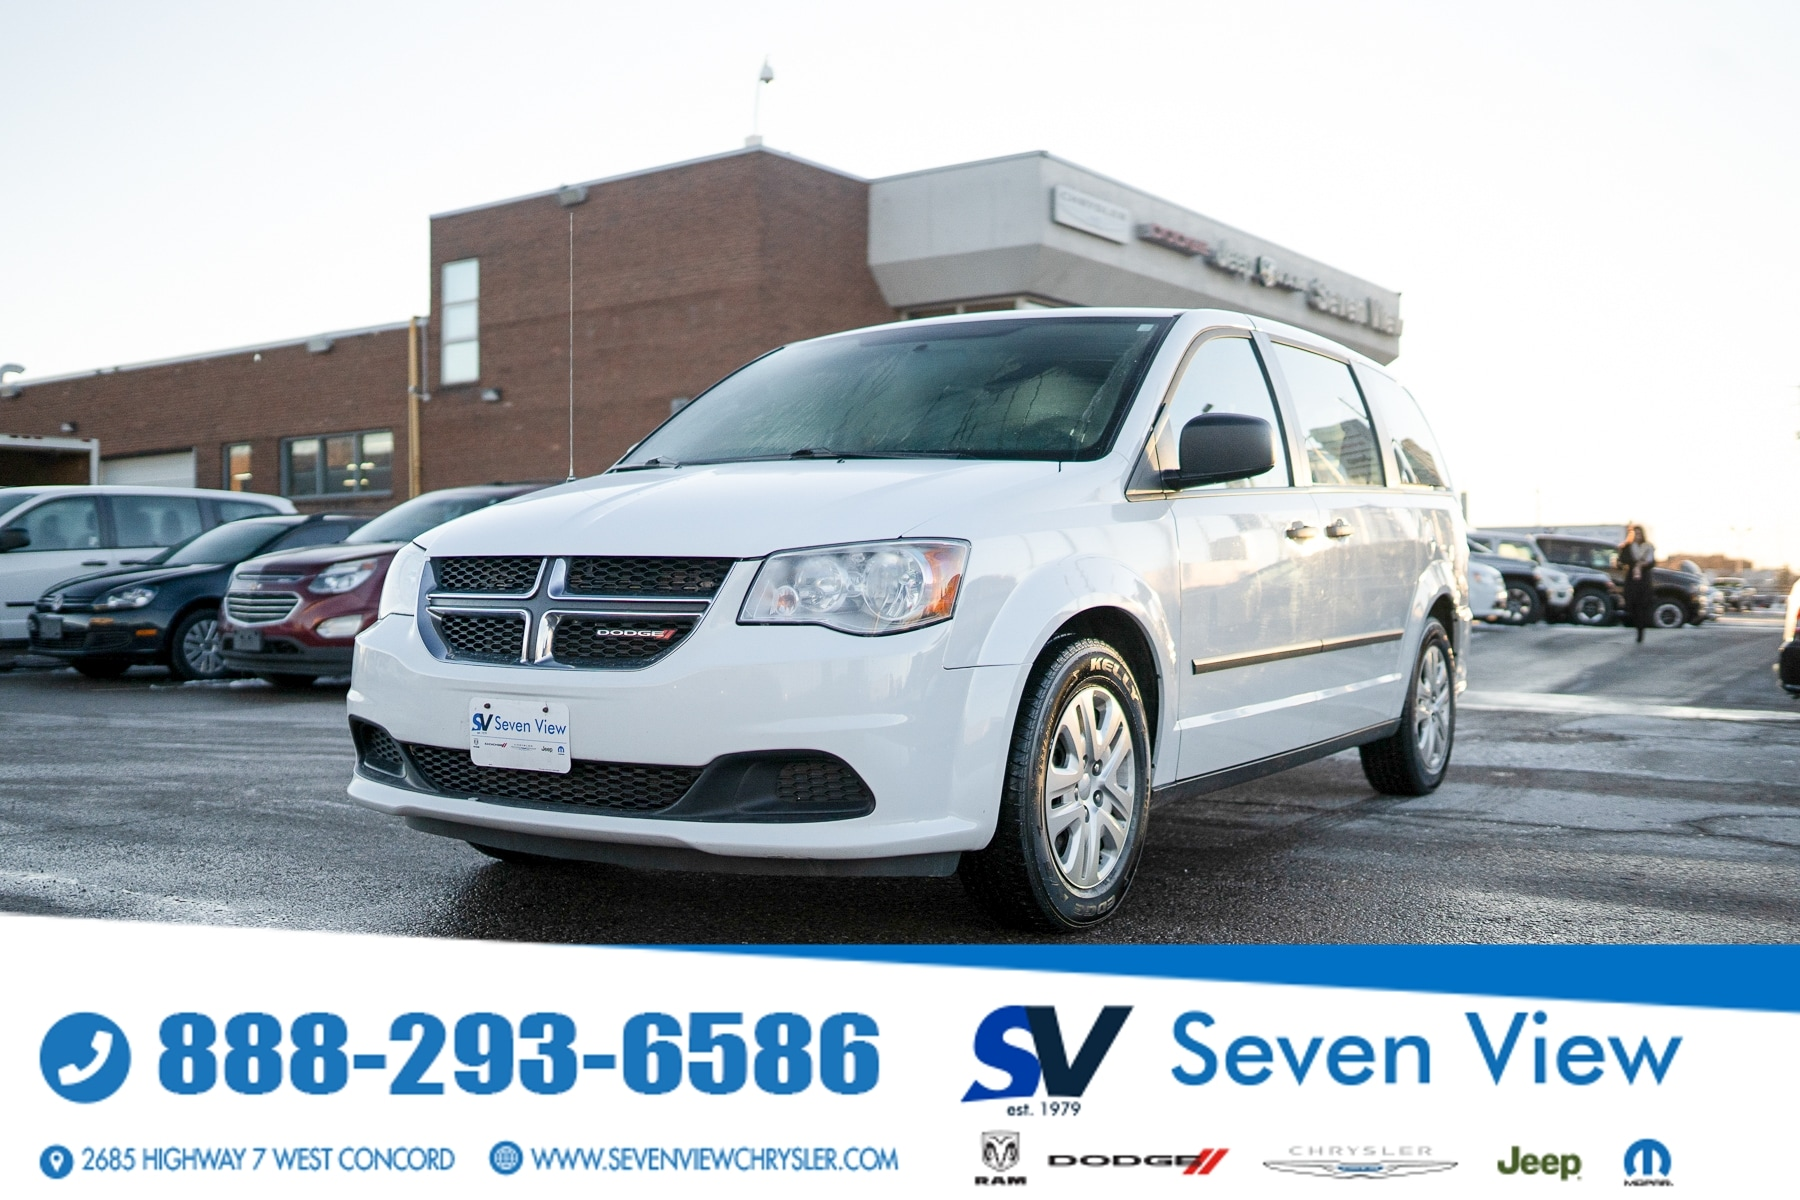 used 2017 Dodge Grand Caravan car, priced at $11,477